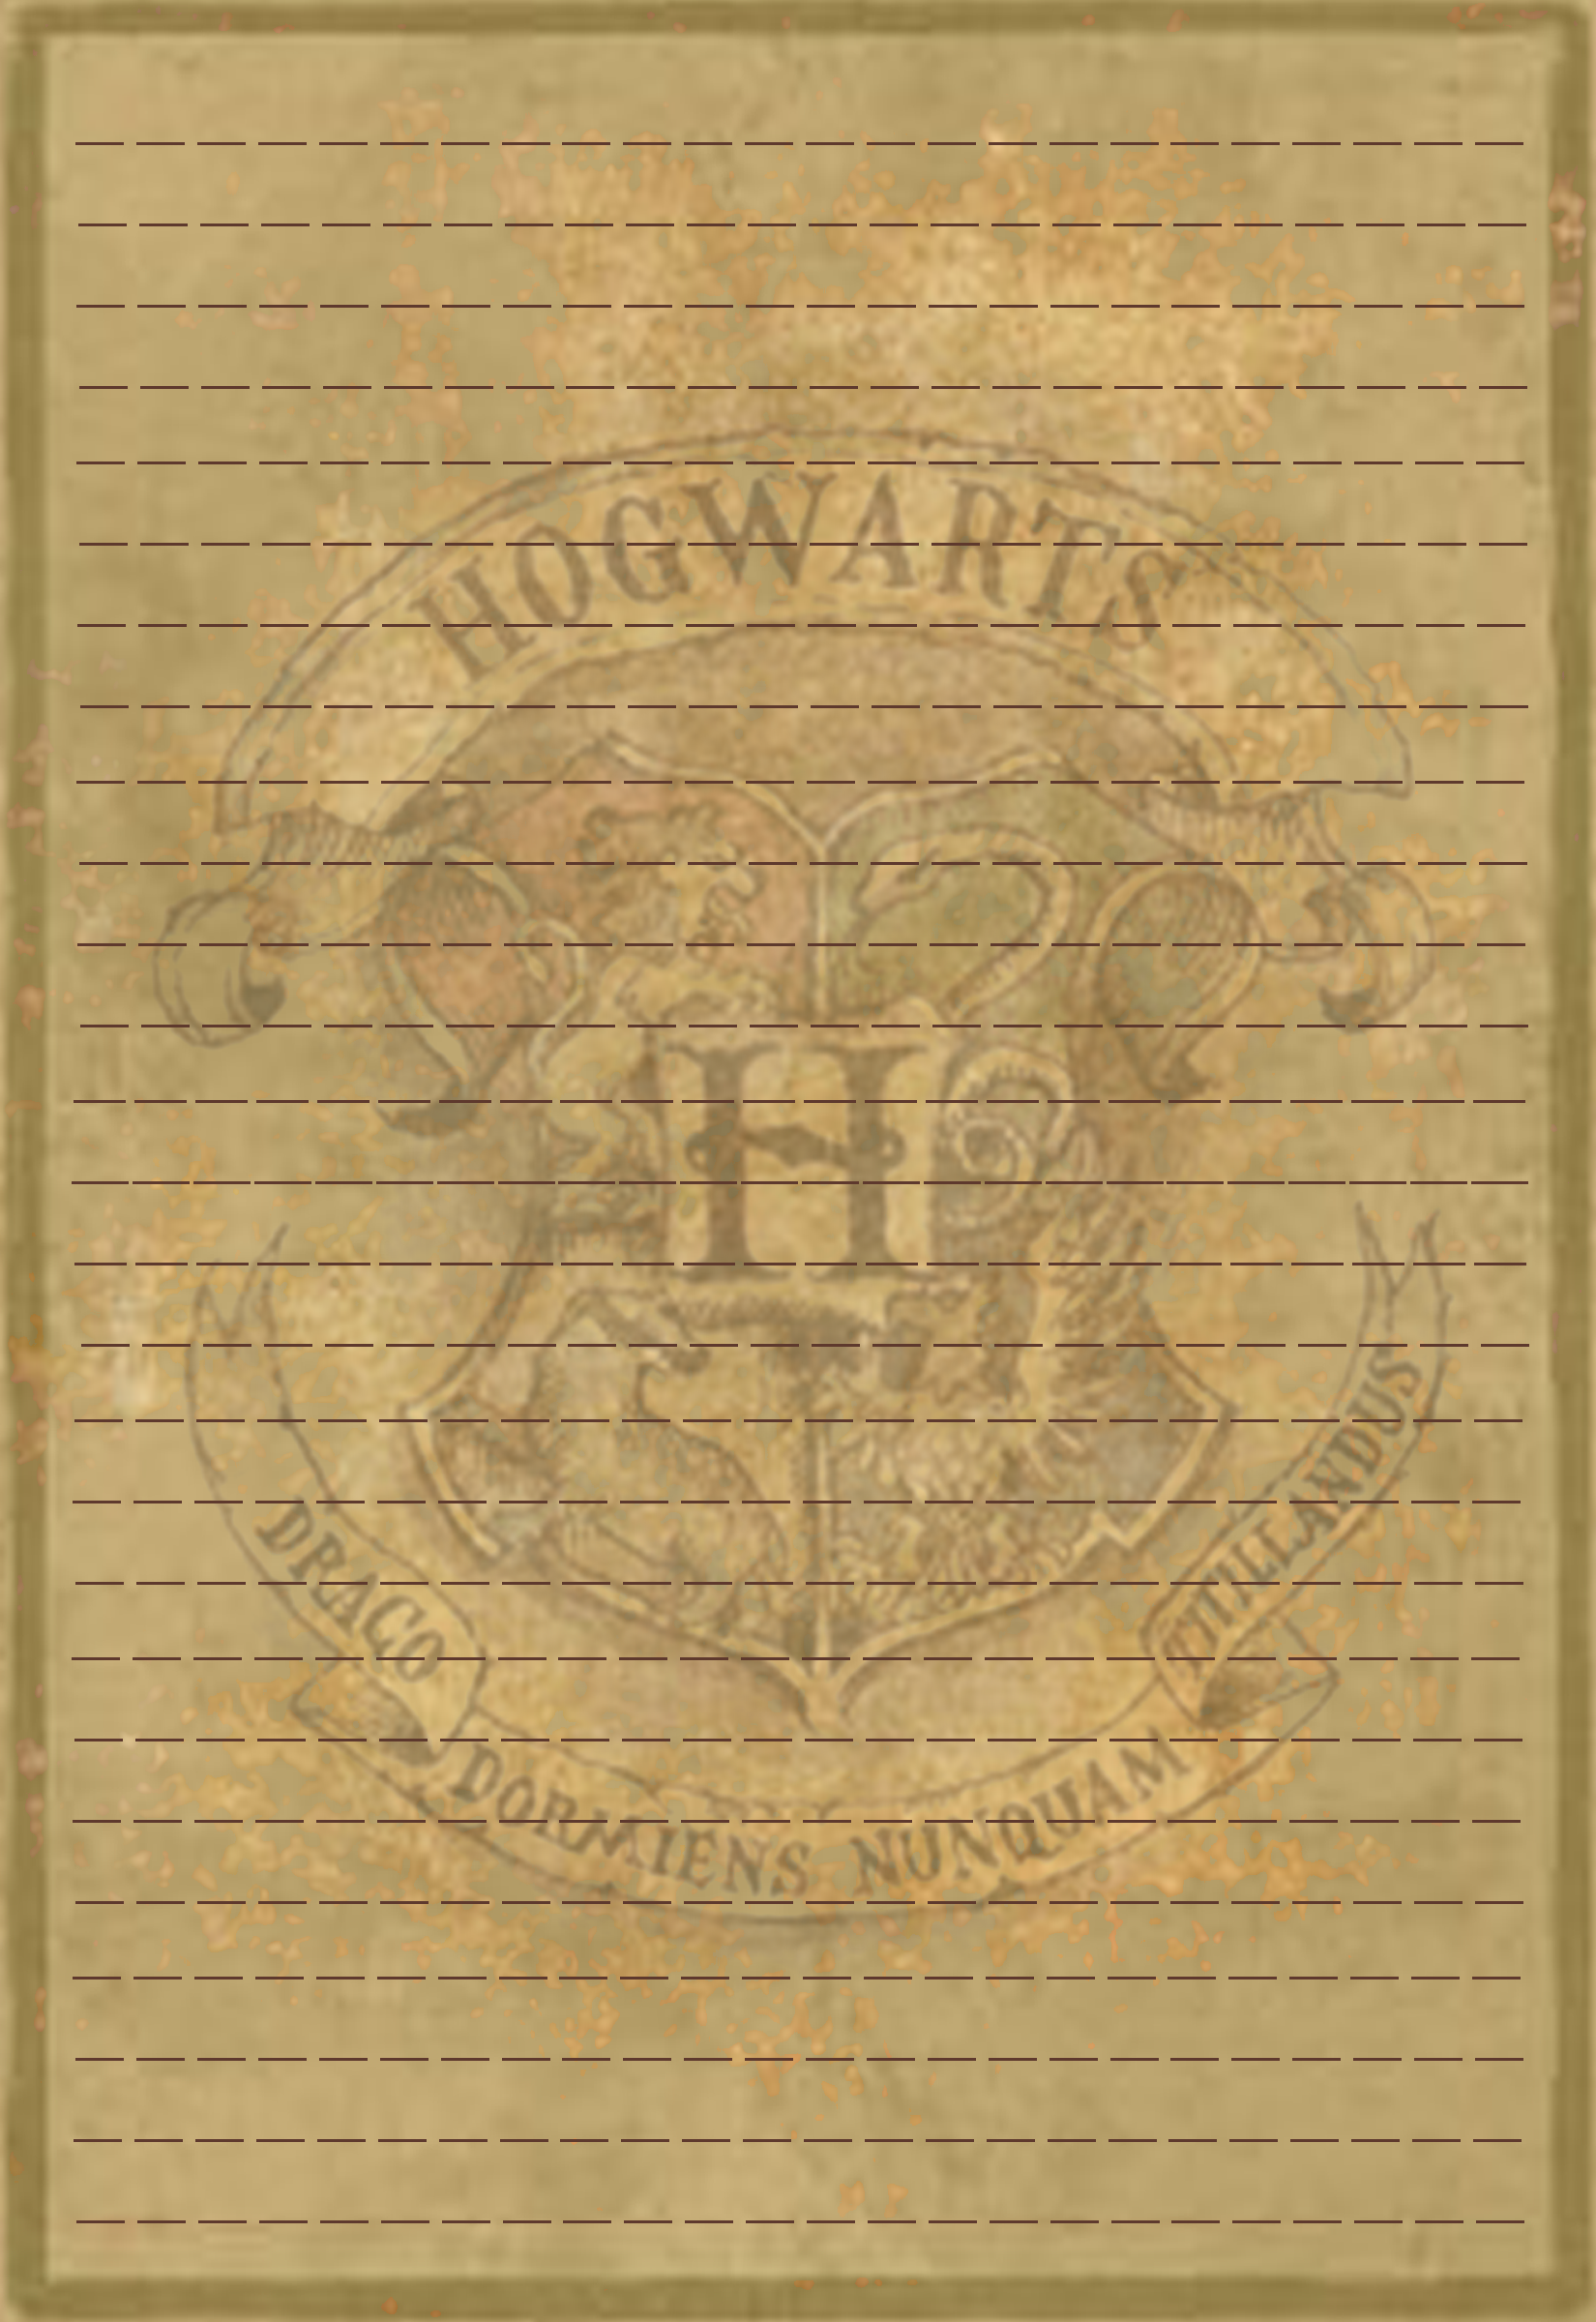 Hogwarts Crest Stationery V1 By Sinome Rae D4c1p8g Png 1650 2400 Carta De Harry Potter Clase De Harry Potter Carta De Hogwarts